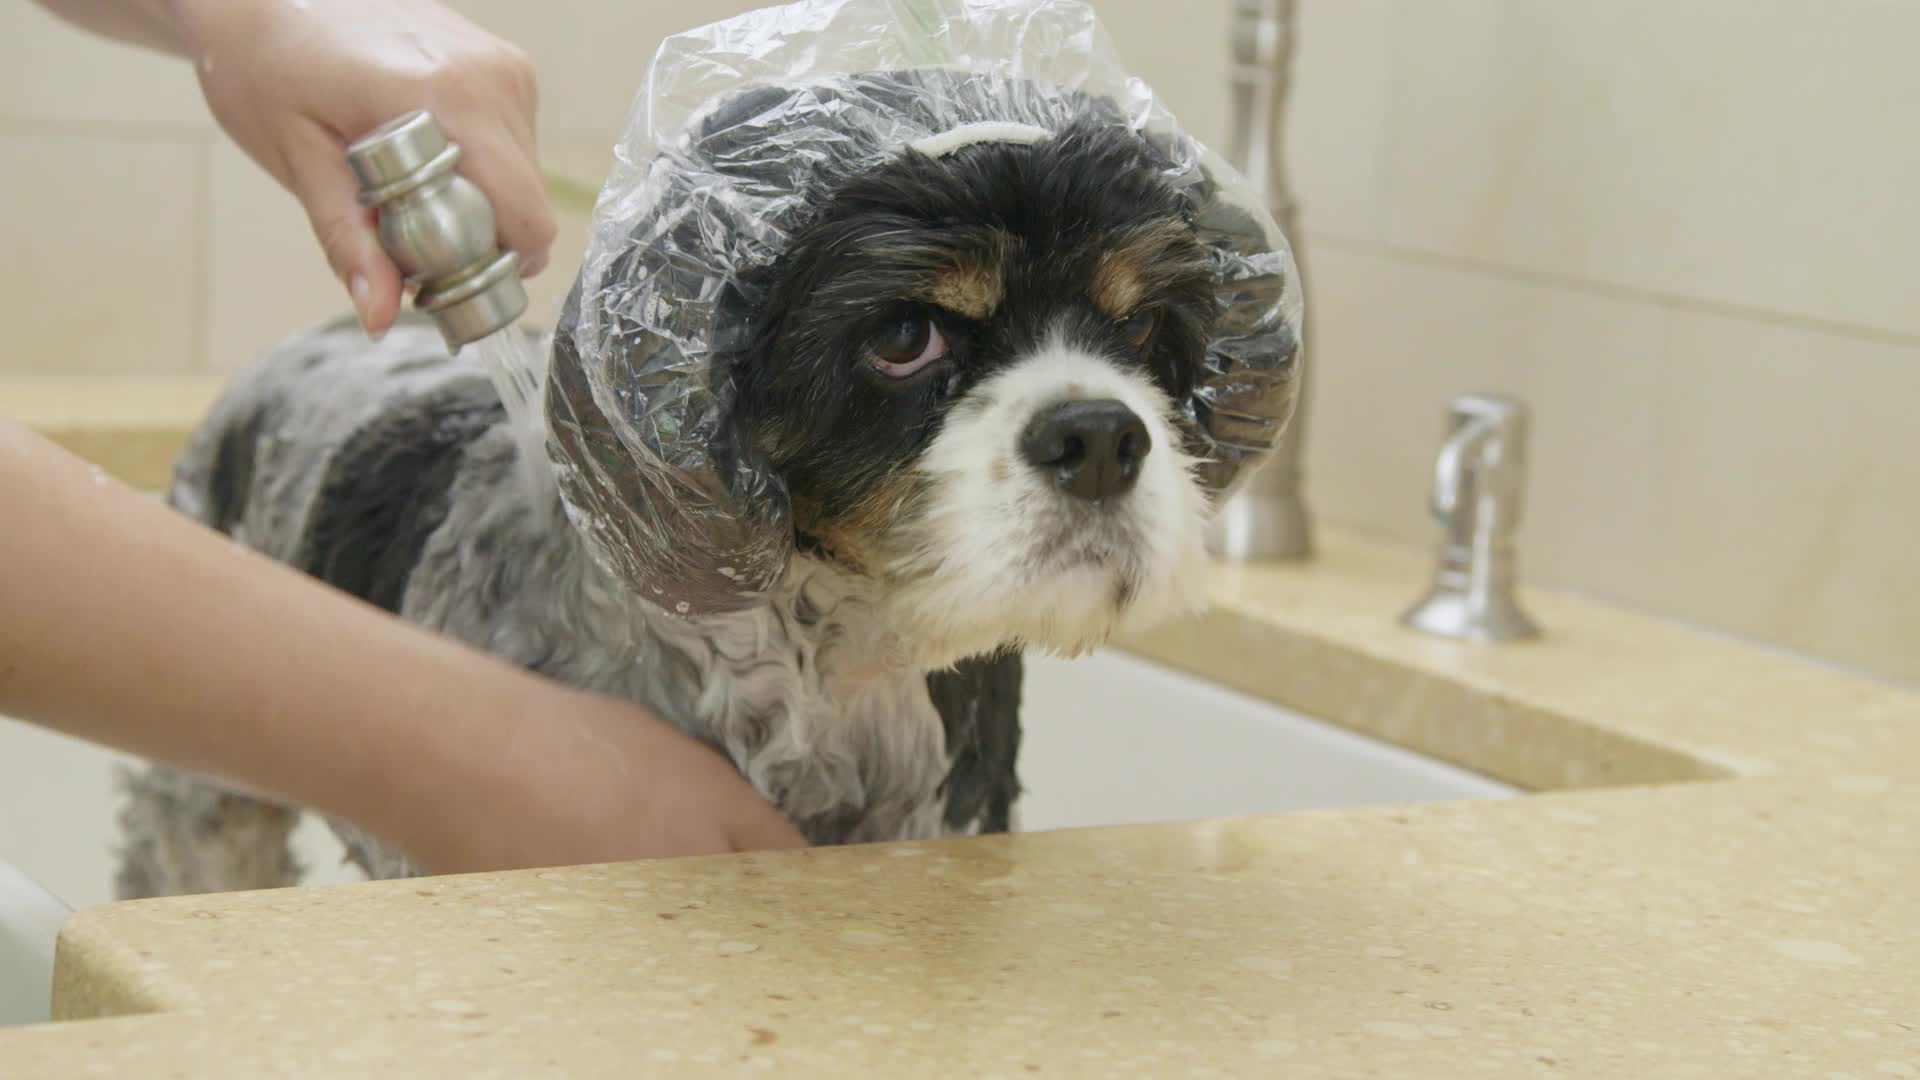 Home Hacks: Discover how easy dog care can be